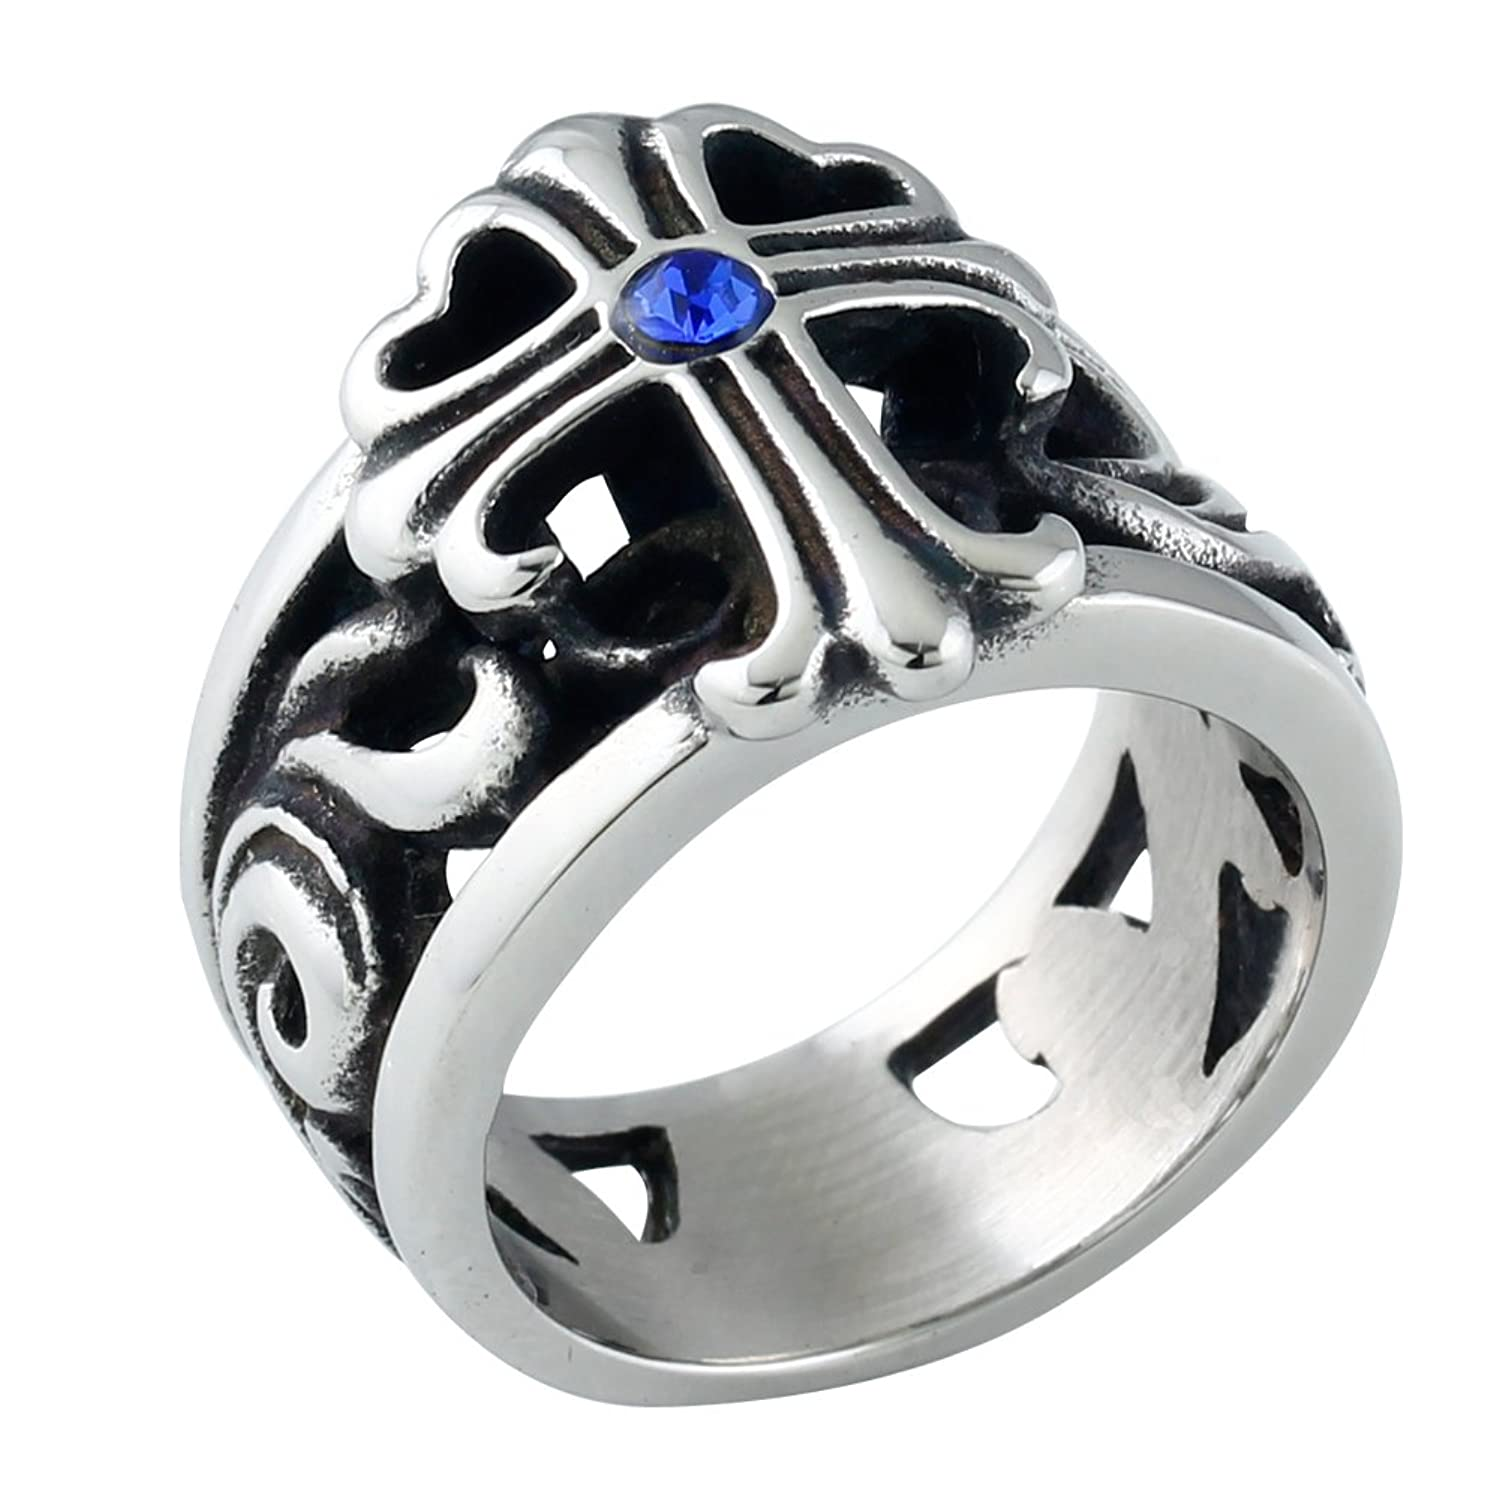 BOHO Jewelry Mens Vinatge Stainless Steel Cross Cz Ring, Black Silver